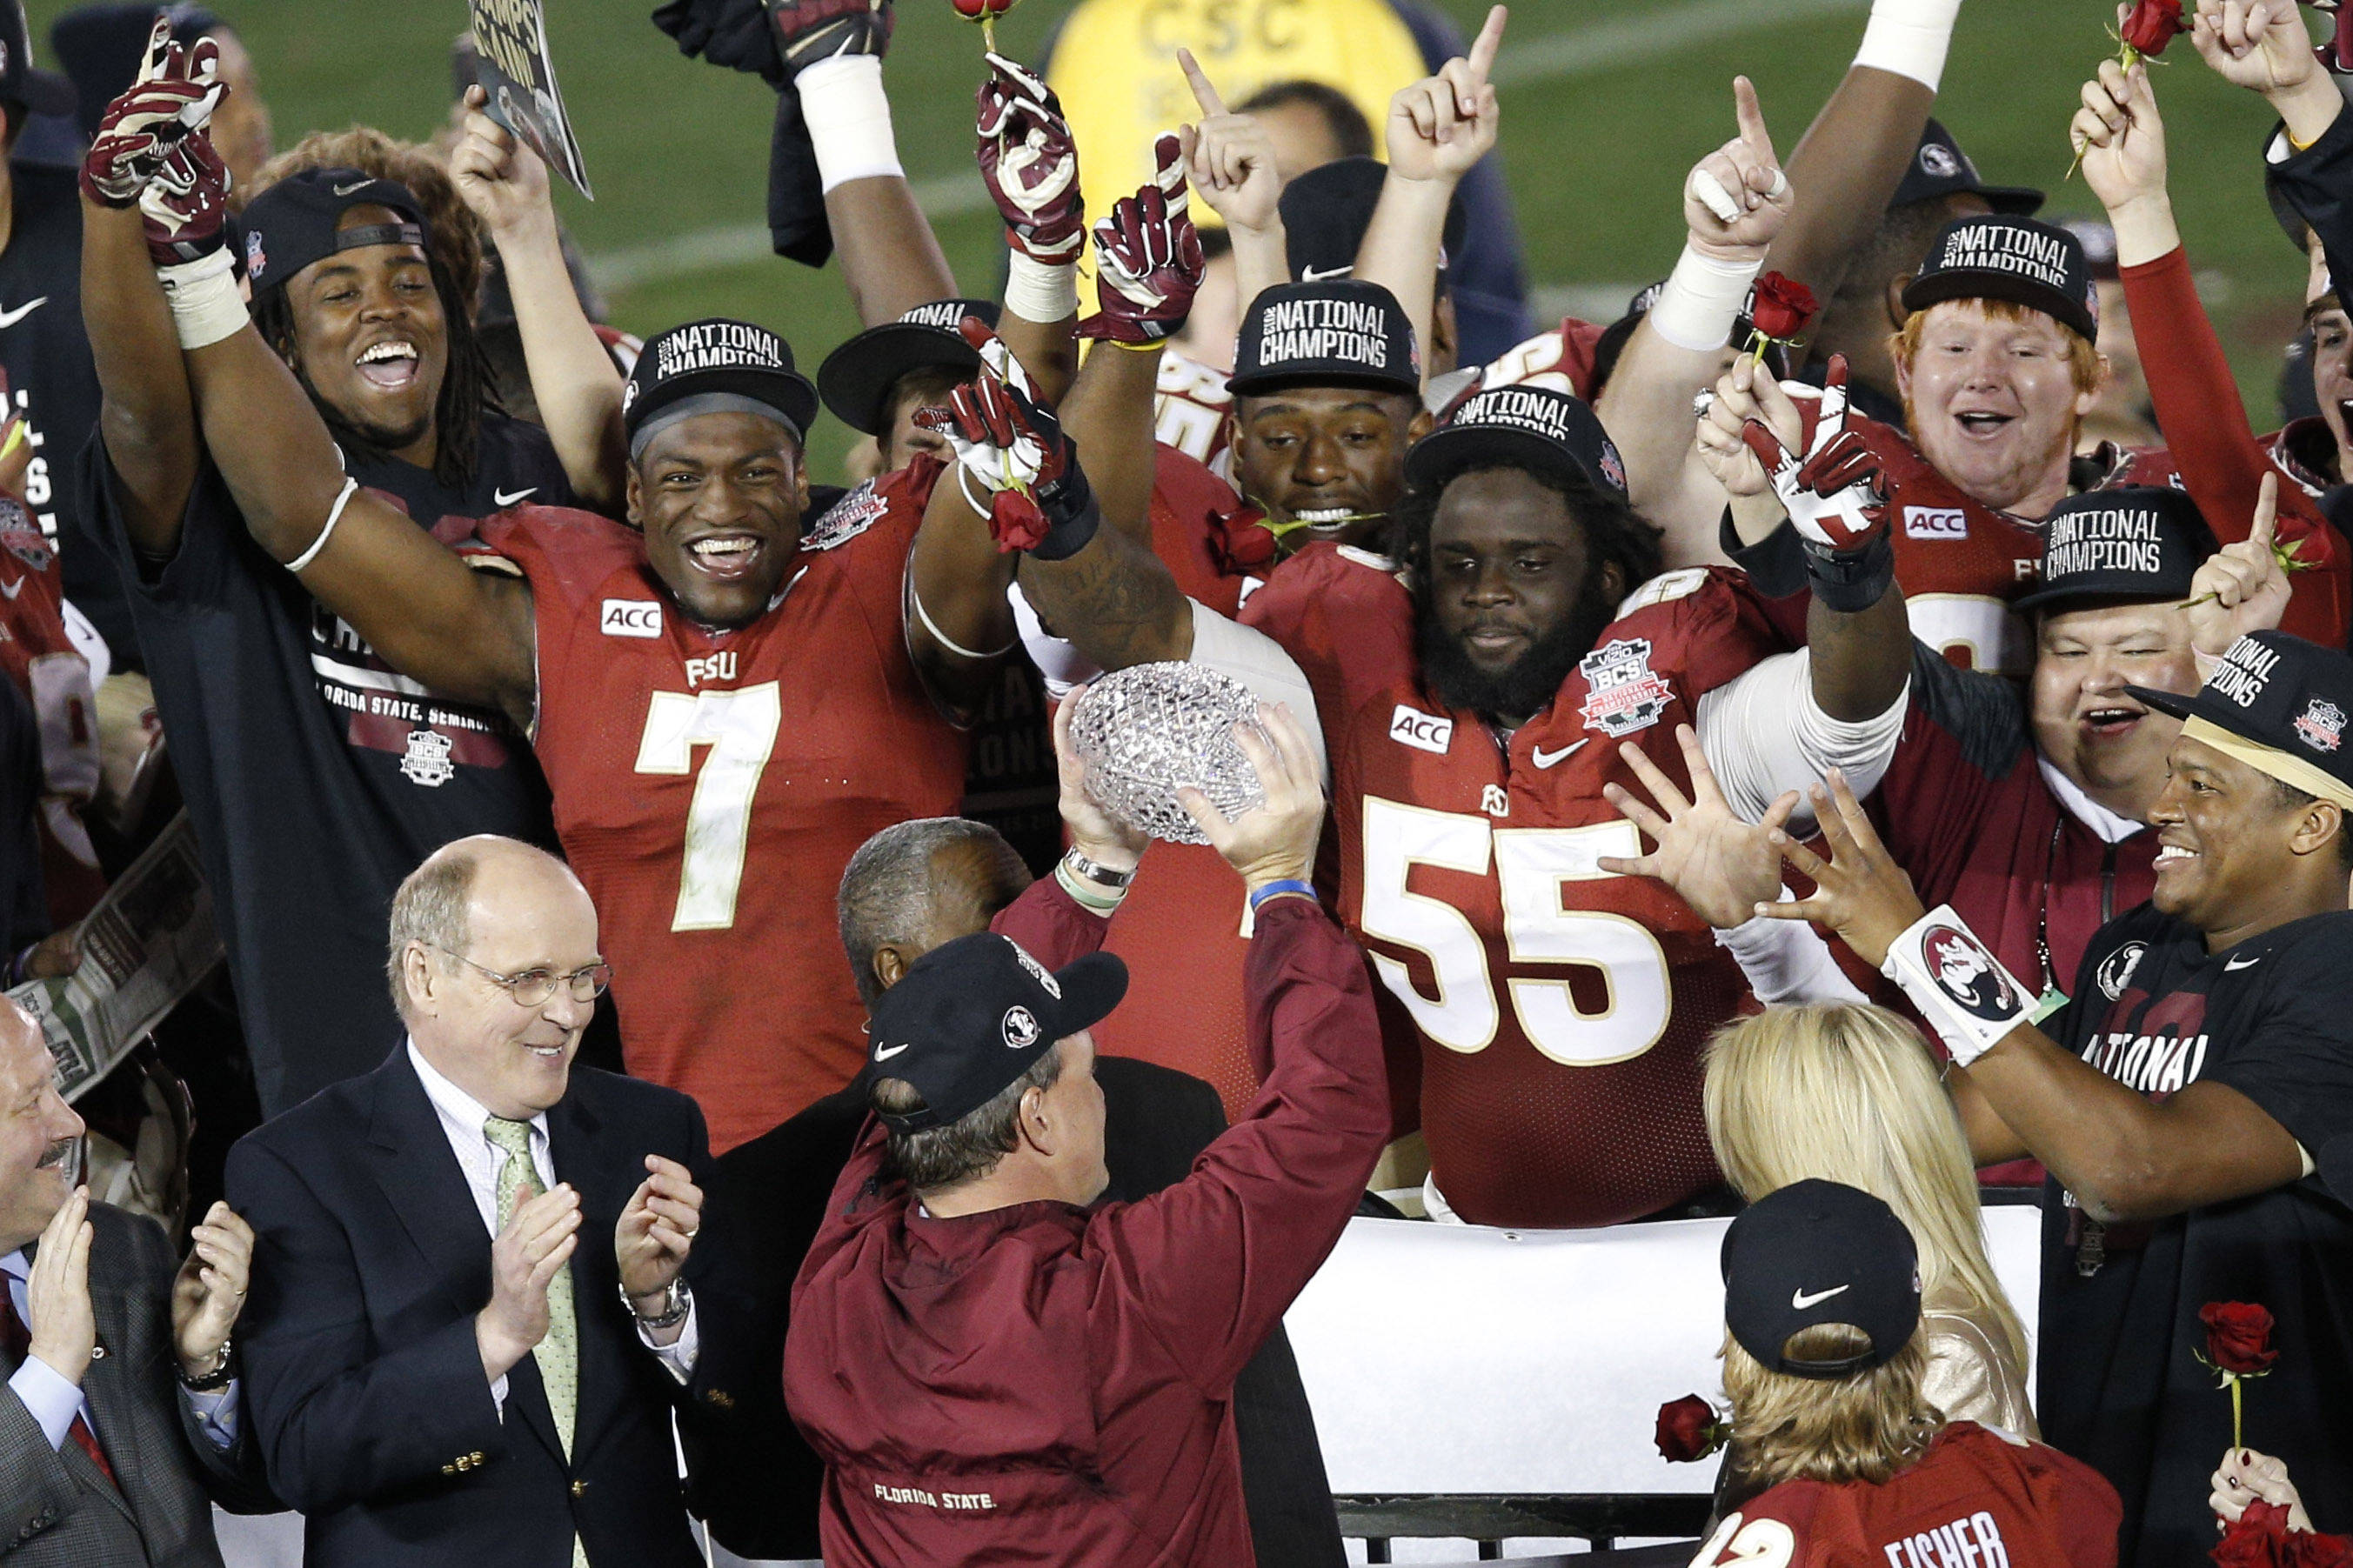 Jan 6, 2014; Pasadena, CA, USA; Florida State Seminoles head coach Jimbo Fisher hoists the Coaches Trophy after defeating the Auburn Tigers 34-31 in the 2014 BCS National Championship game at the Rose Bowl.  Mandatory Credit: Kelvin Kuo-USA TODAY Sports